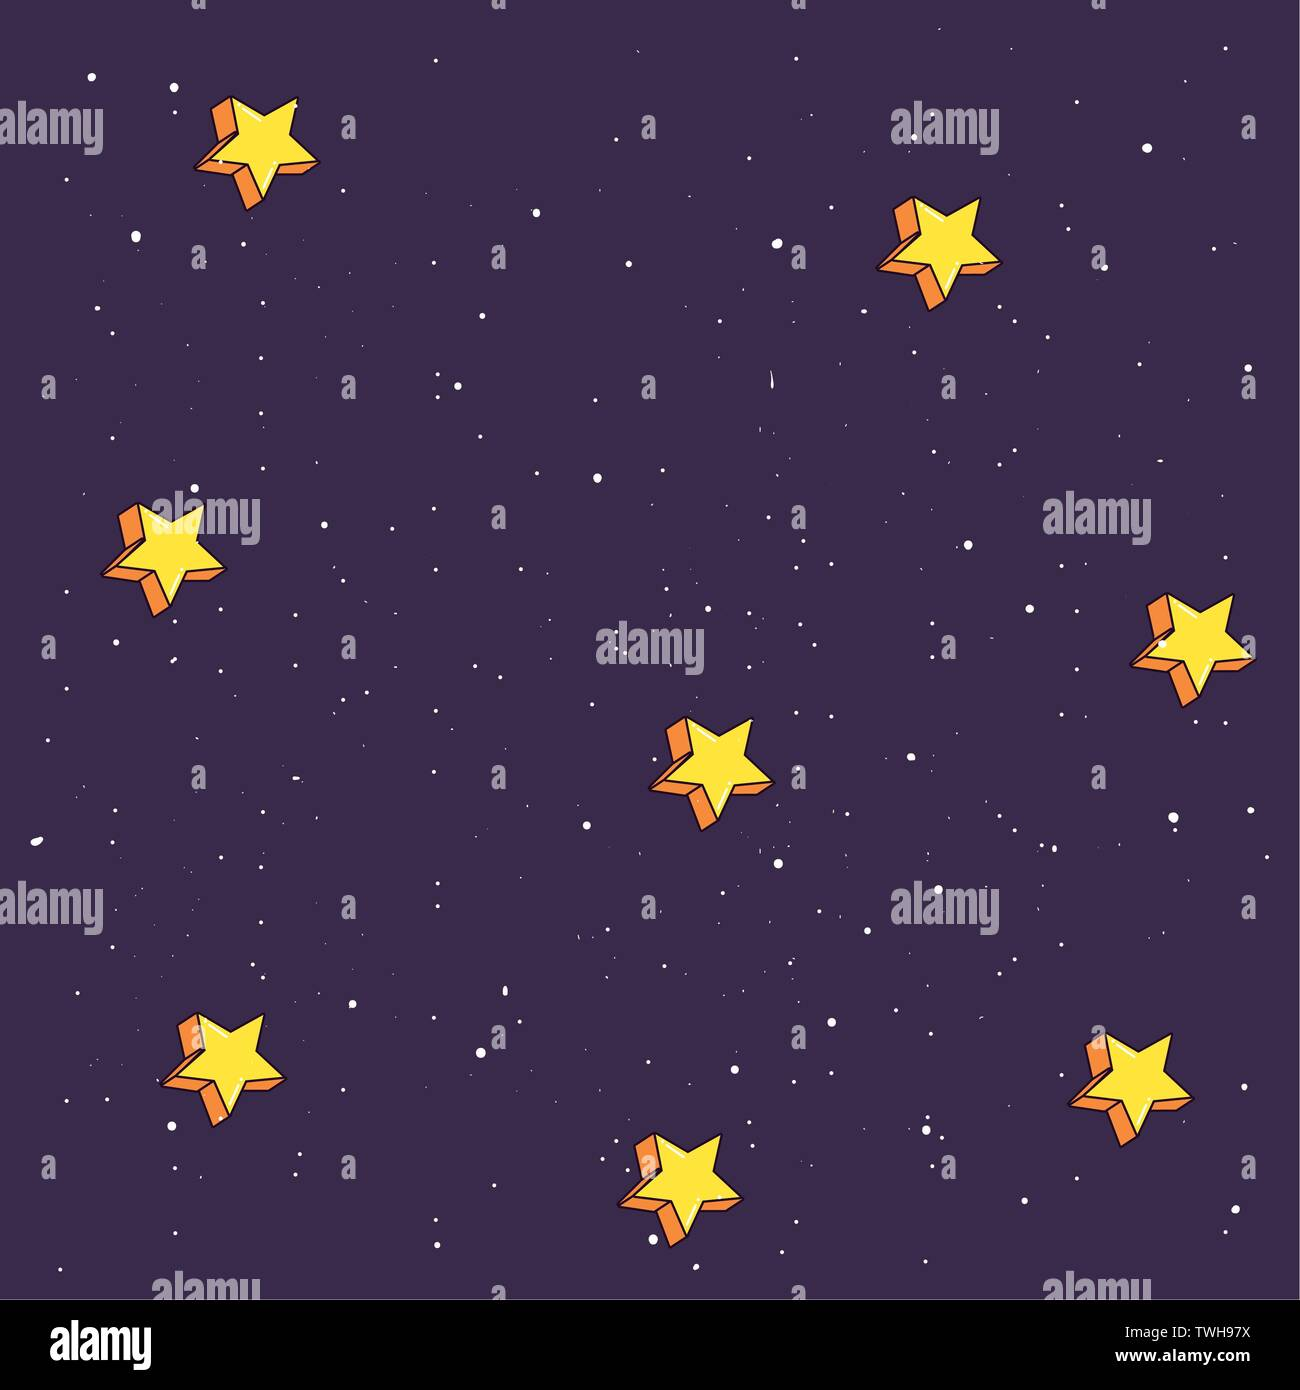 space stars galaxy astronomy background vector illustration - Stock Vector